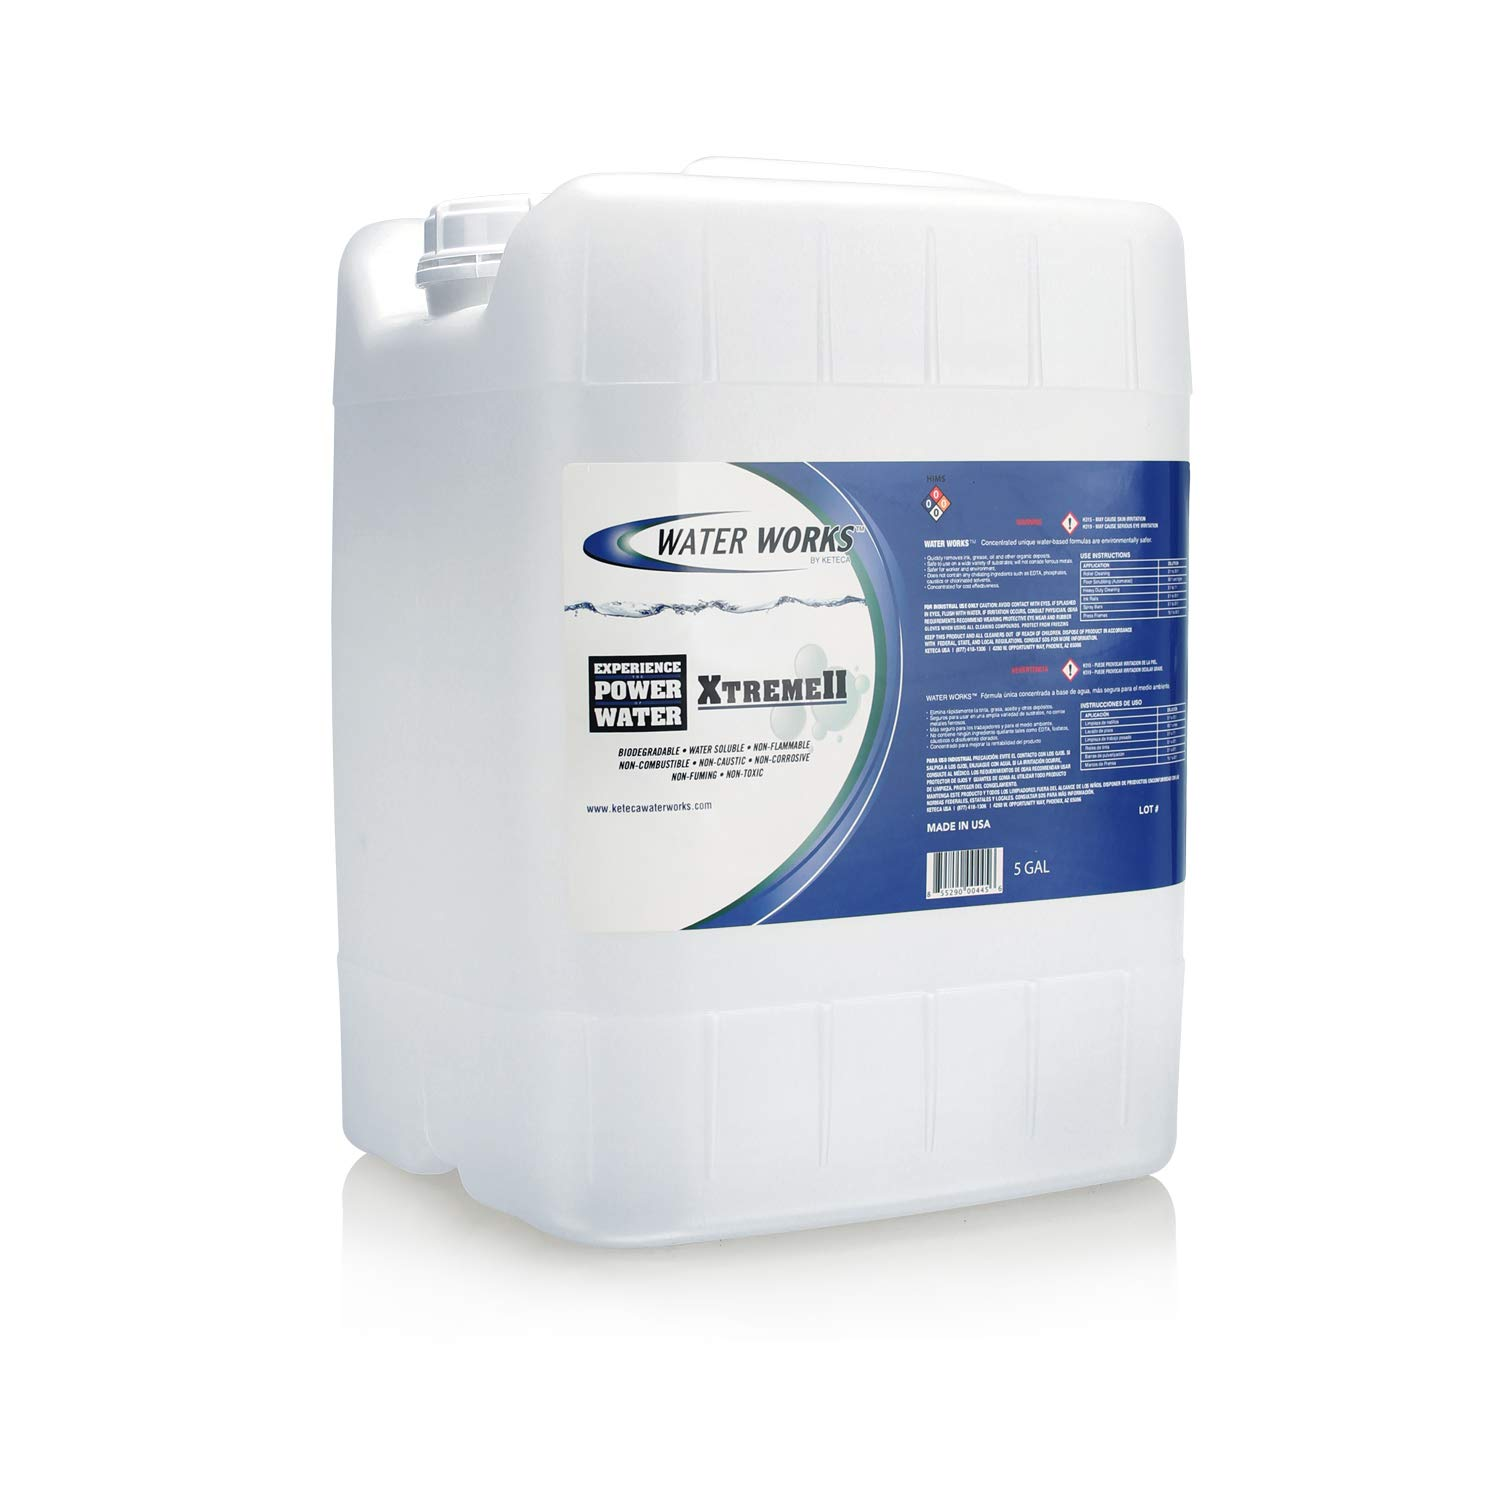 Water Works Xtreme KLEEN Surfactant Based Ink Cleaner/Degreaser, 5 Gallons by Water Works